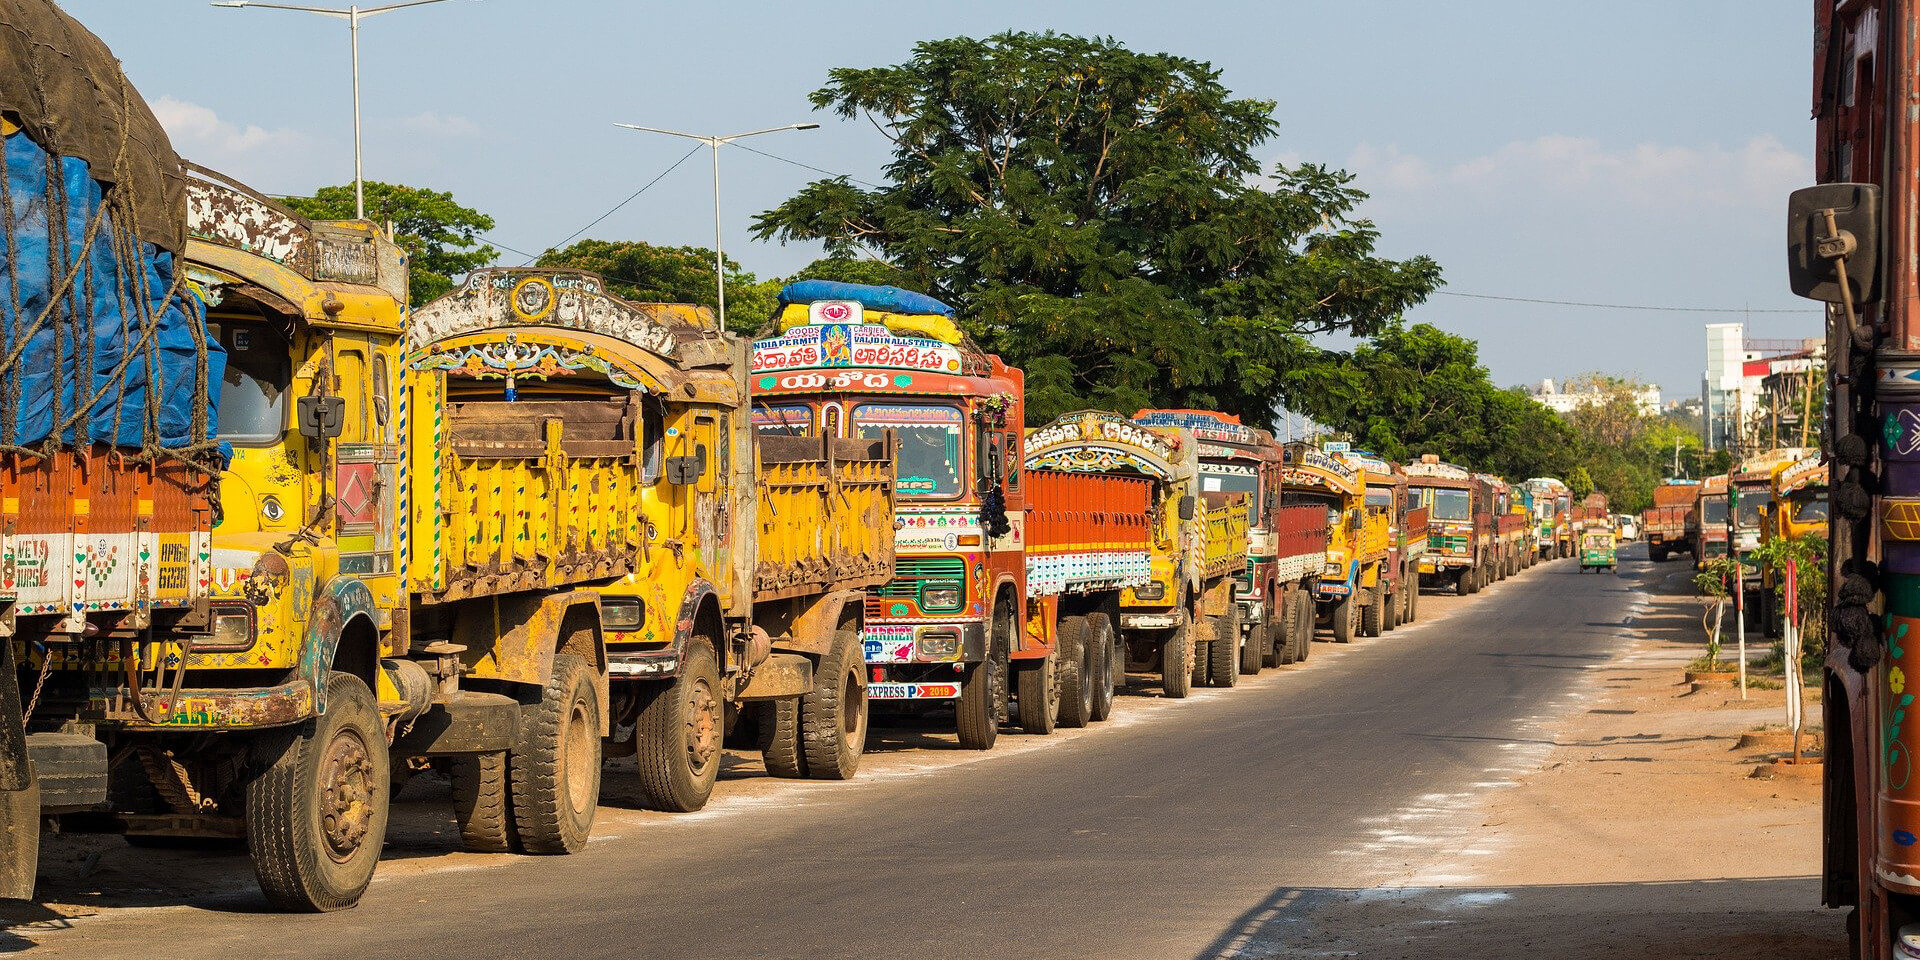 Intents Mobi News-No separate passes required for inter-state movement of trucks